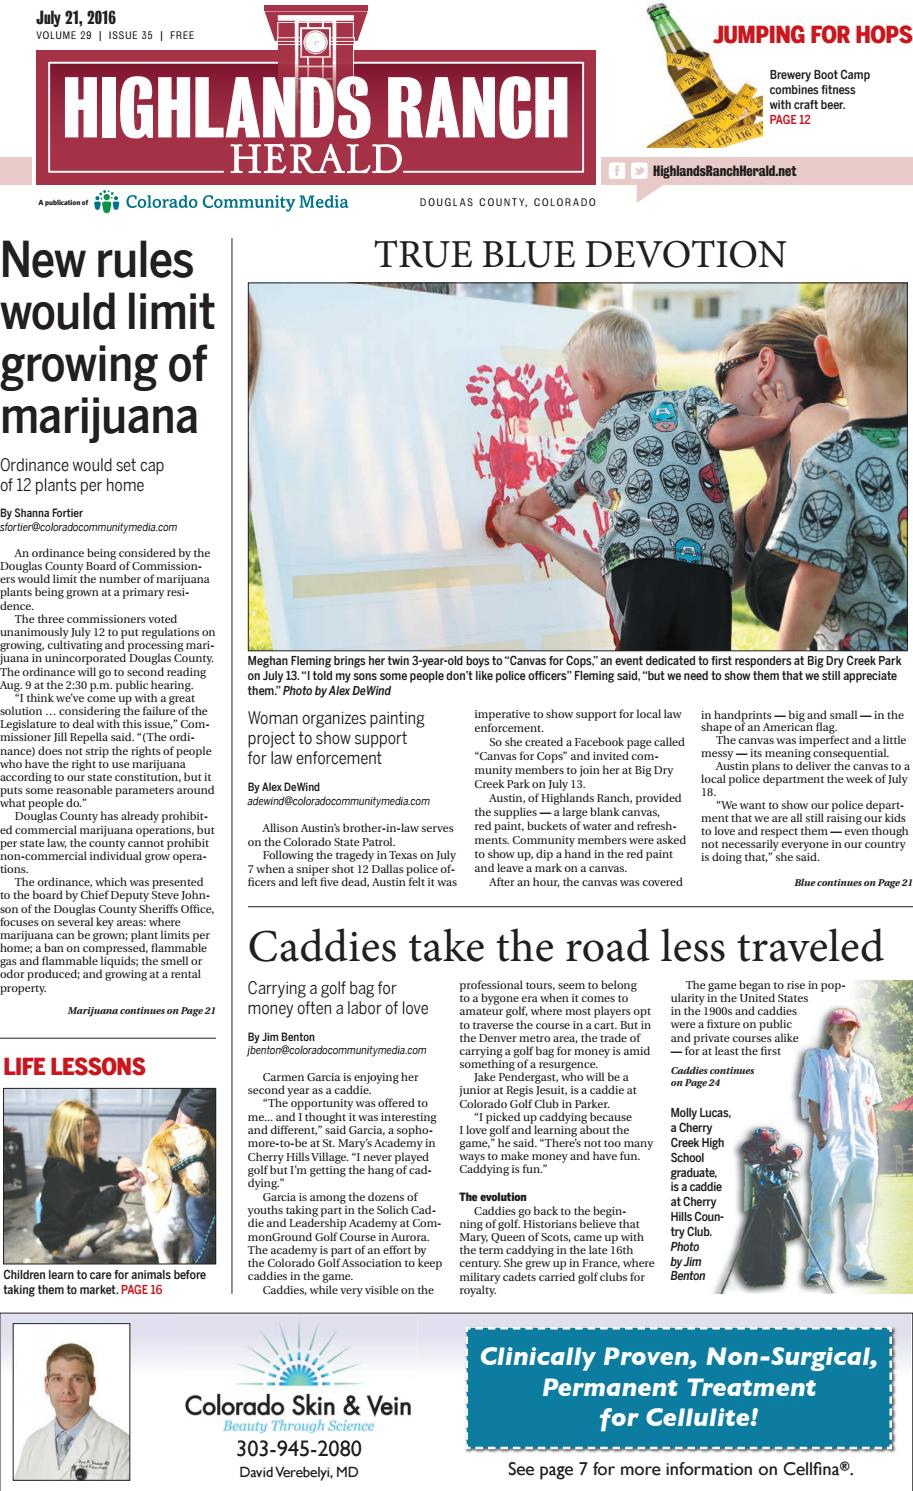 Highlands Ranch Herald 0721 by Colorado Community Media - issuu